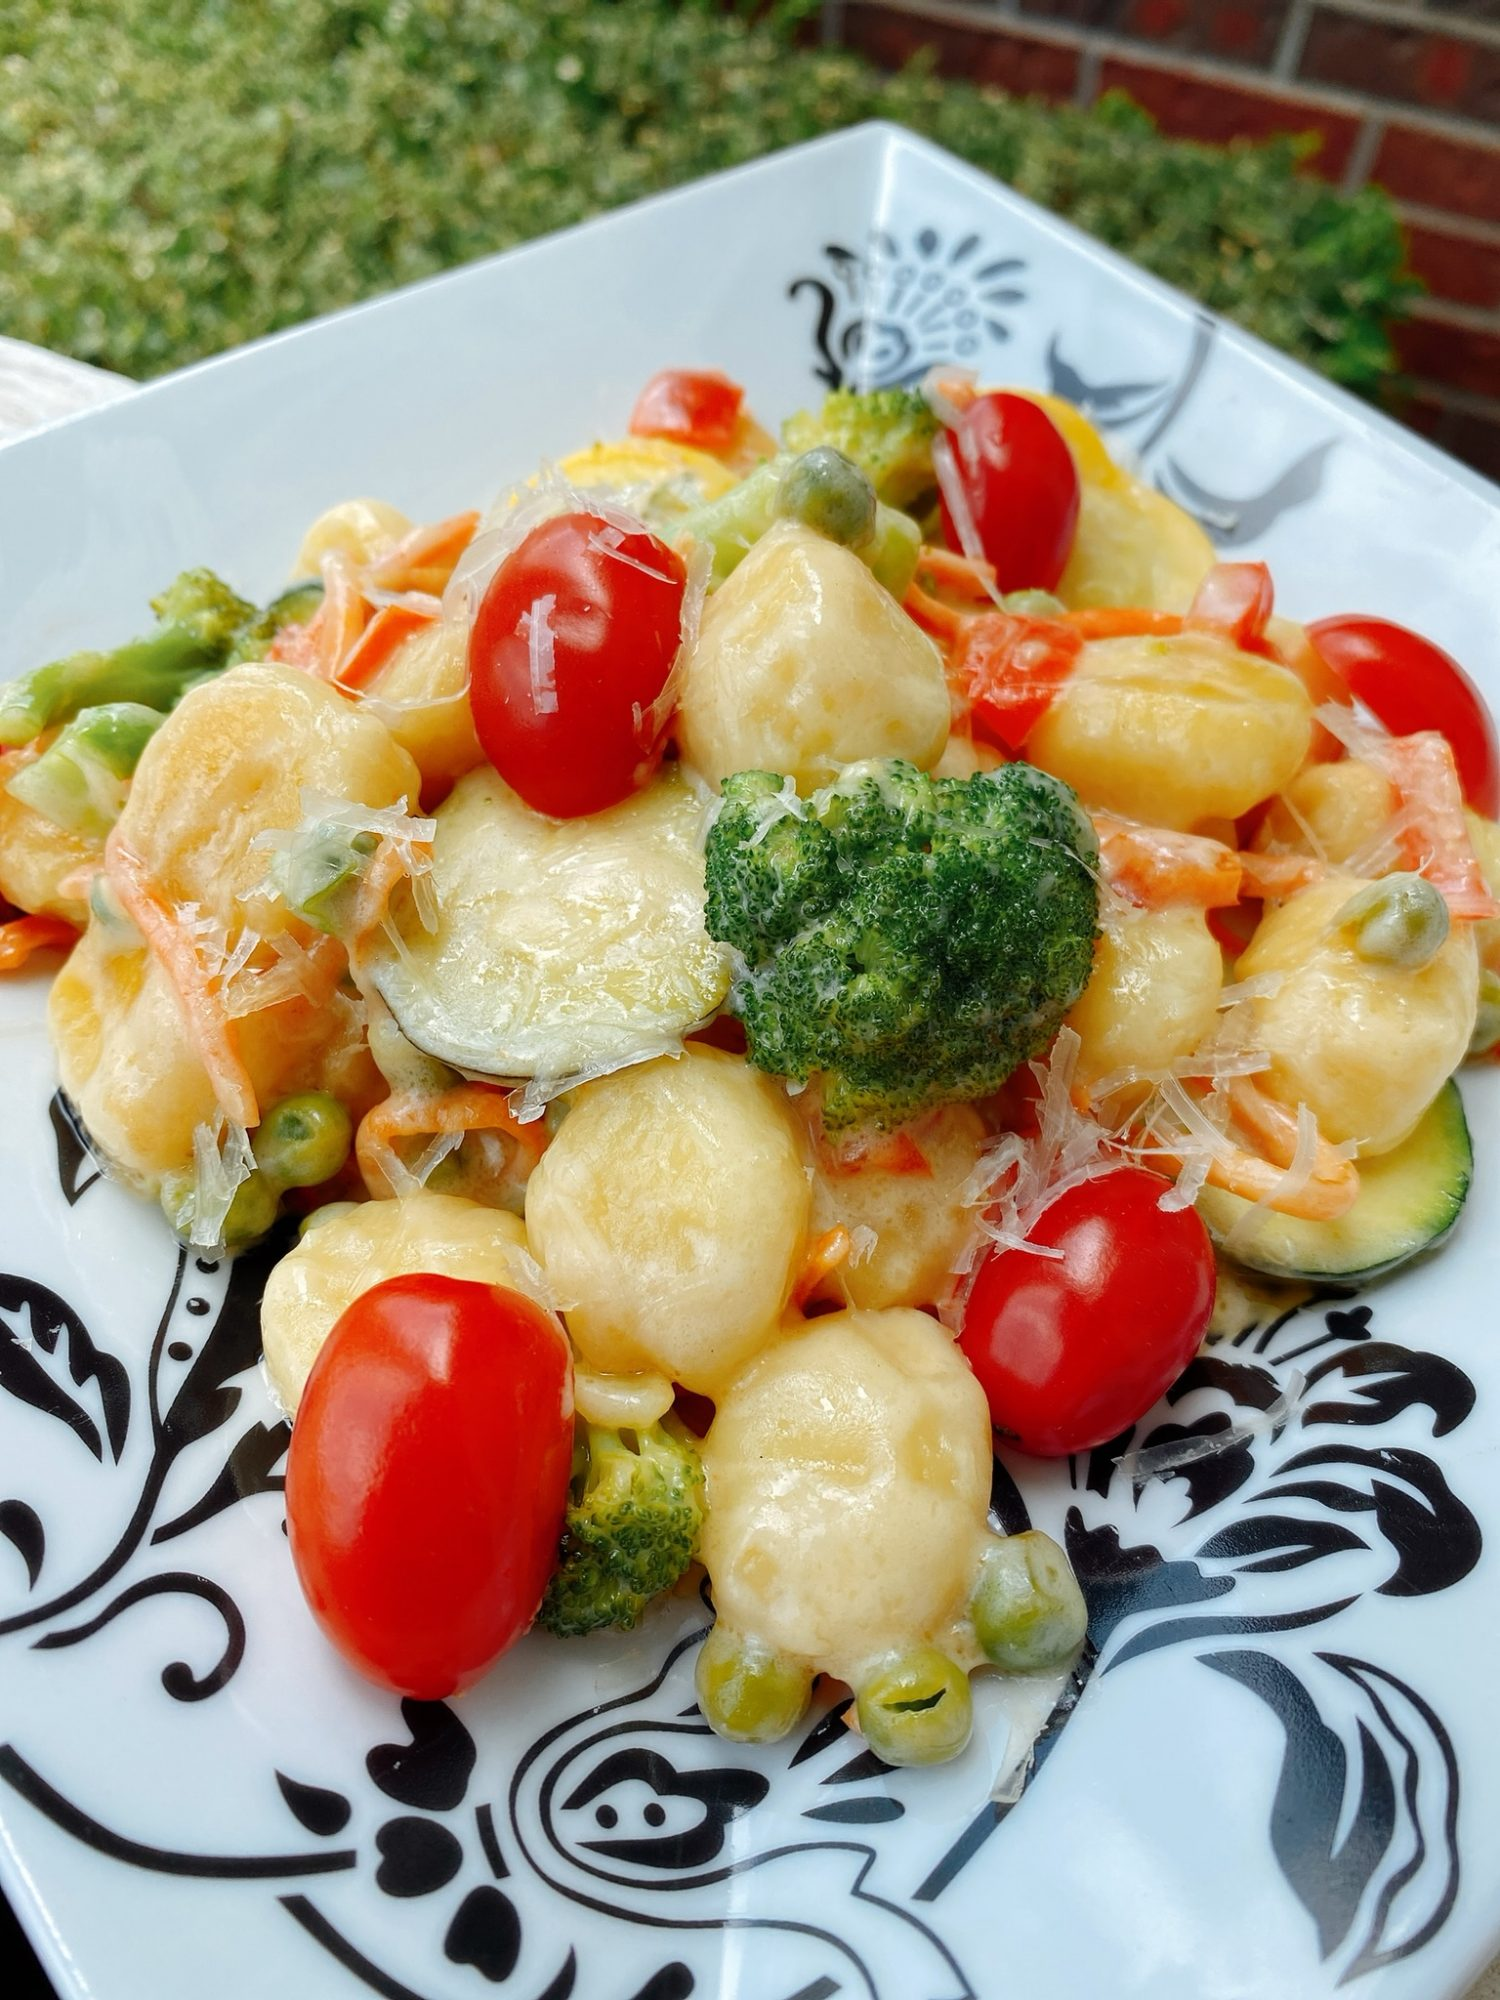 gnocchi with broccoli and cherry tomatoes